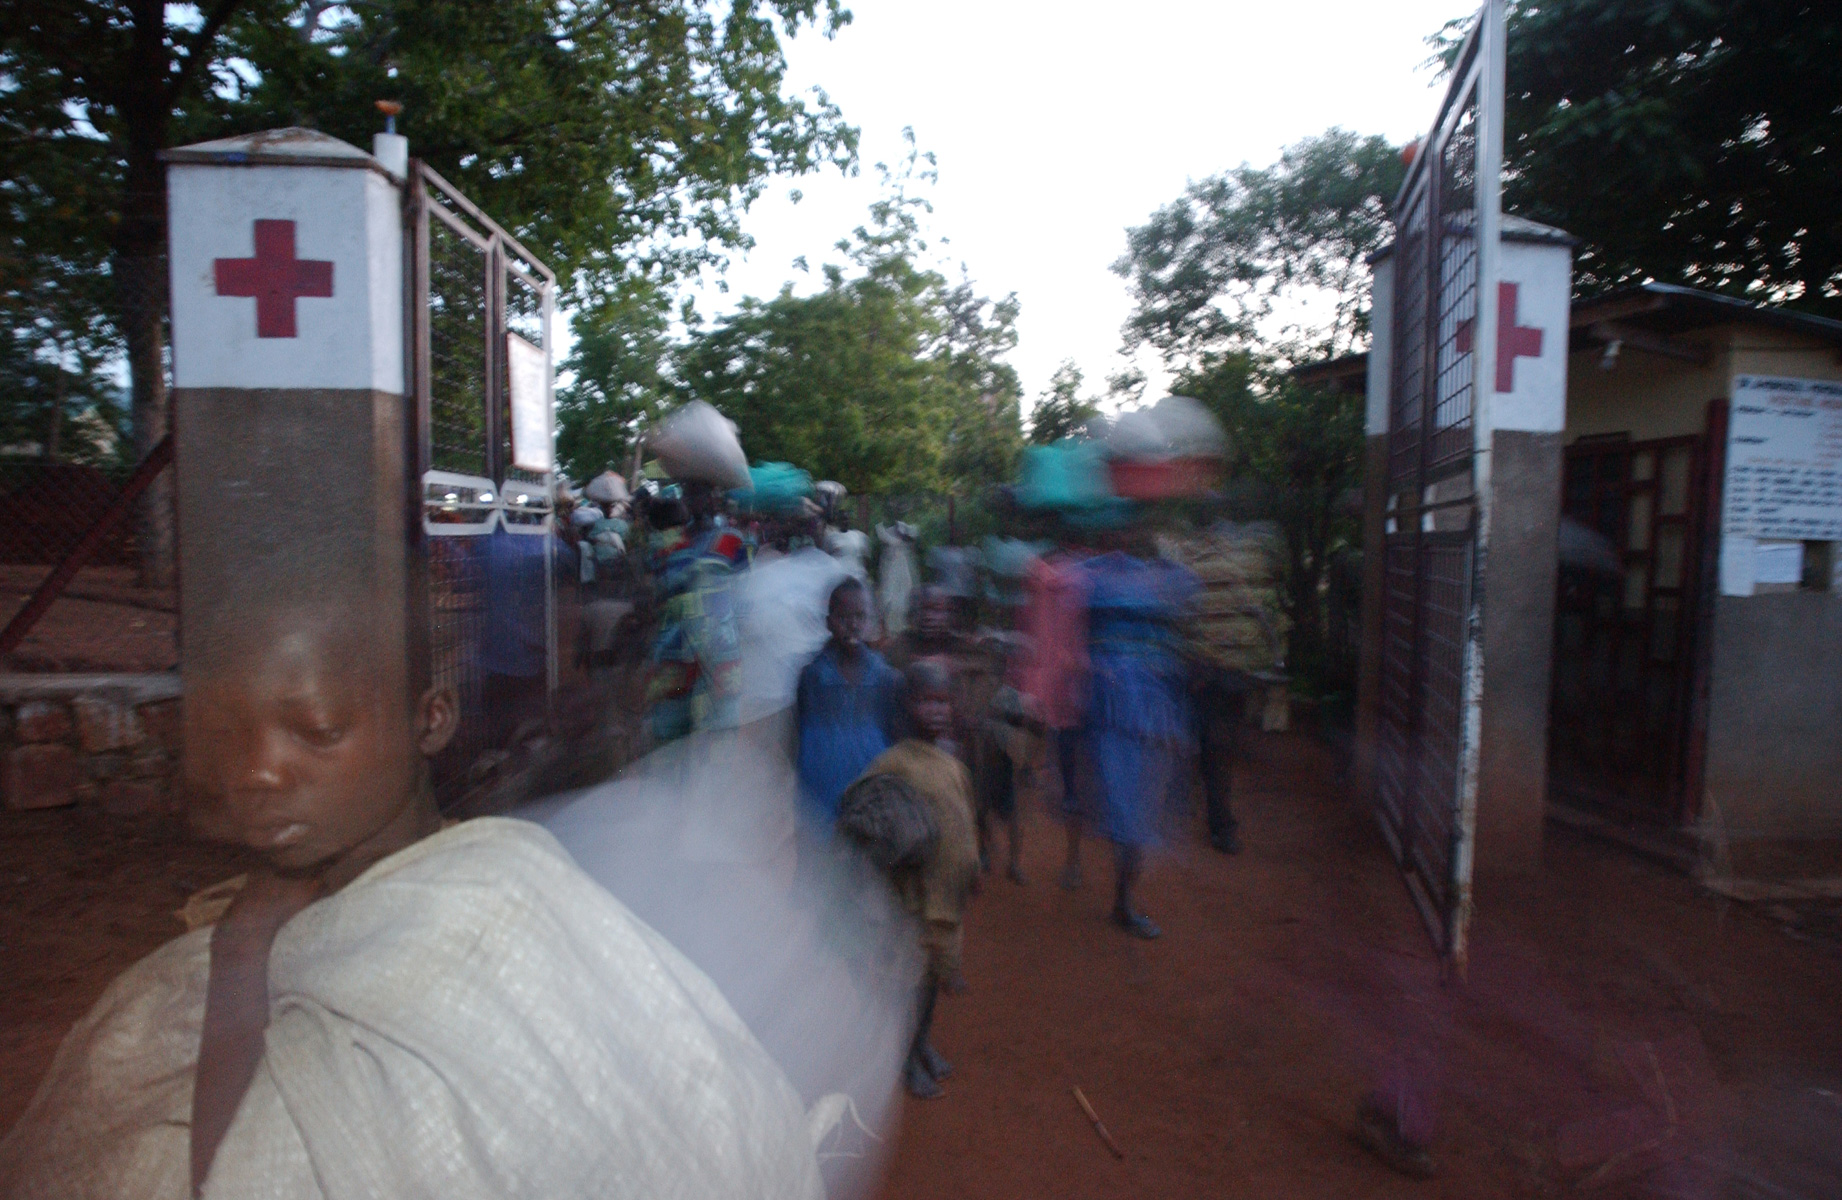 Women and children pour into Ambrosoli Memorial Hospital Kalongo hoping to avoid abduction by the Lord's Resistance Army. The internally displaced people's camp or protected camps as referred to by the Ugandan Government lies just on the other side of the chain link fence but security is so bad they come inside the hospital grounds by nightfall seeking protection. Uganda.